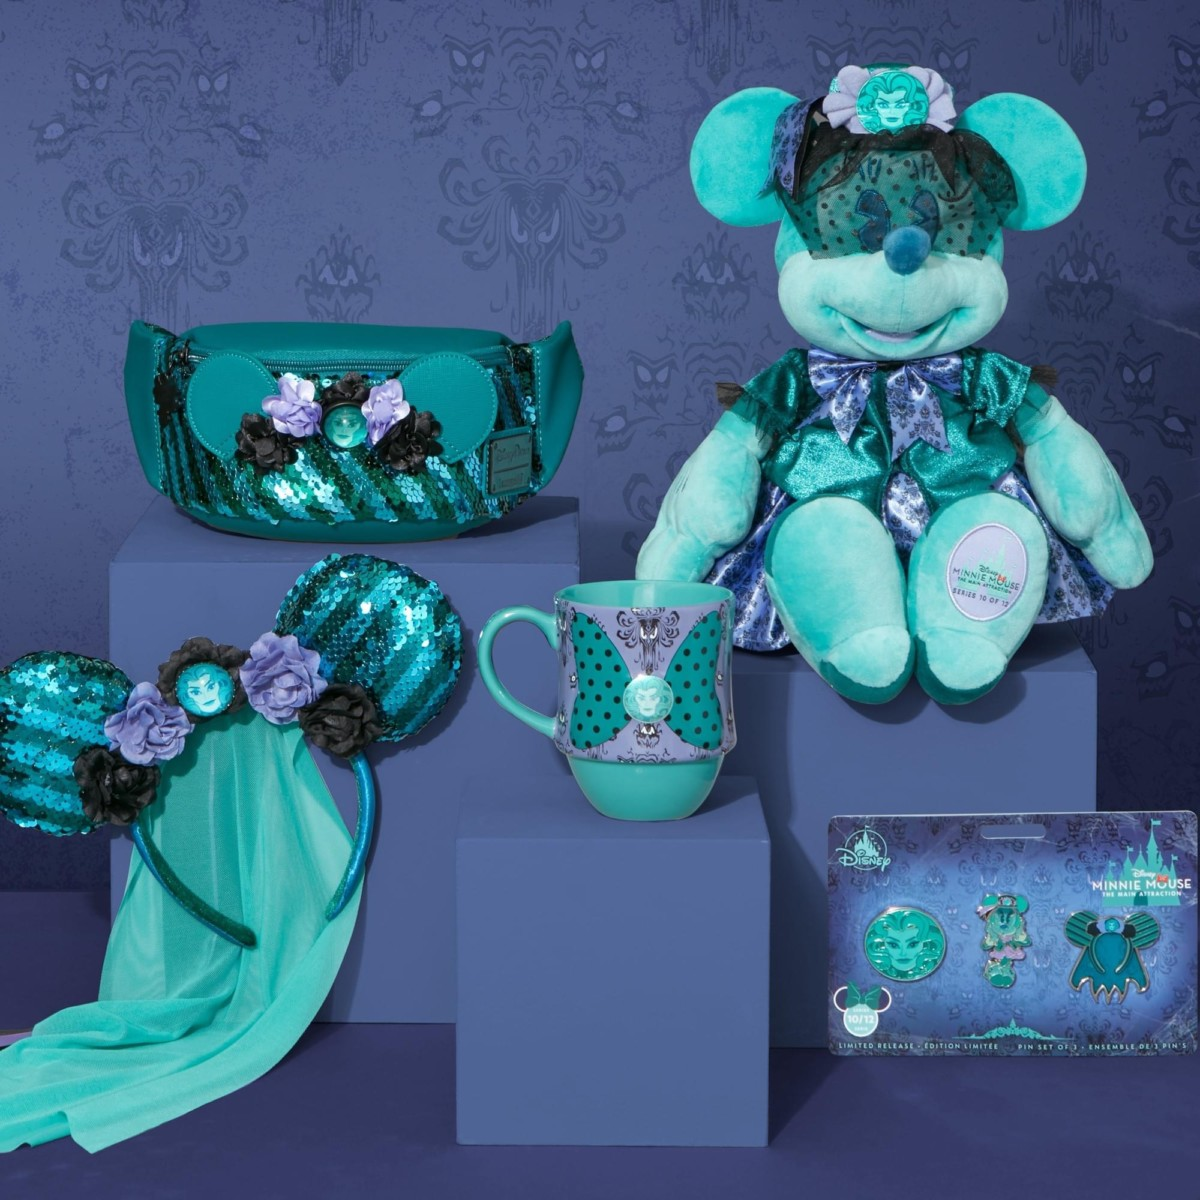 Minnie Mouse the Main Attraction- Haunted Mansion October Line 2